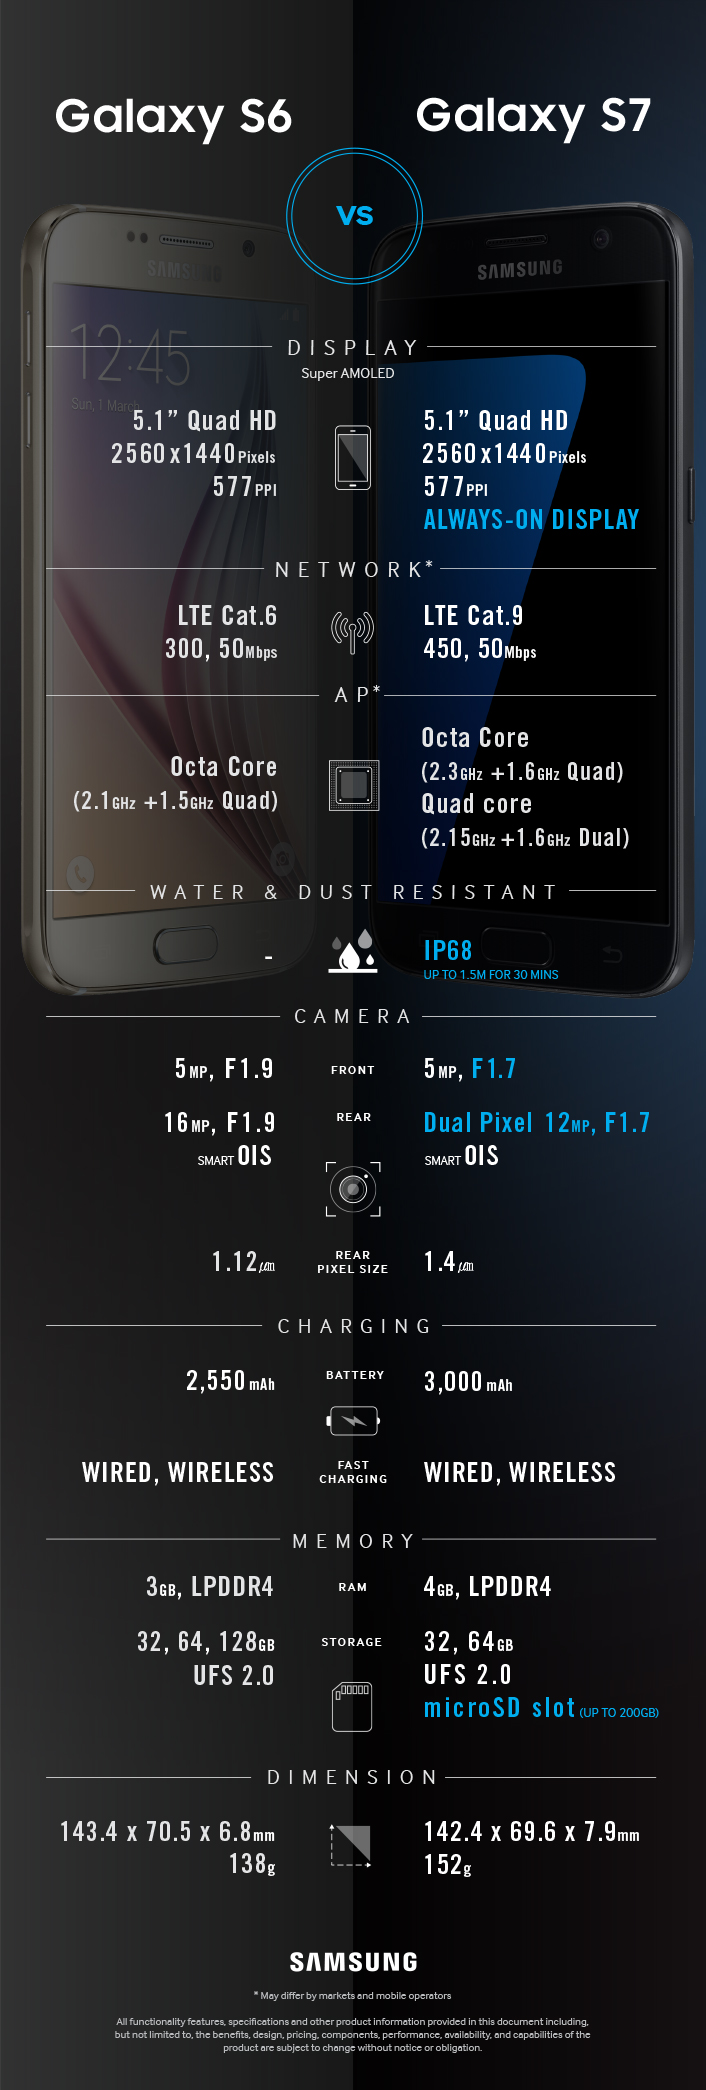 Galaxy S7 and Galaxy S6 comparison (credit: Samsung)